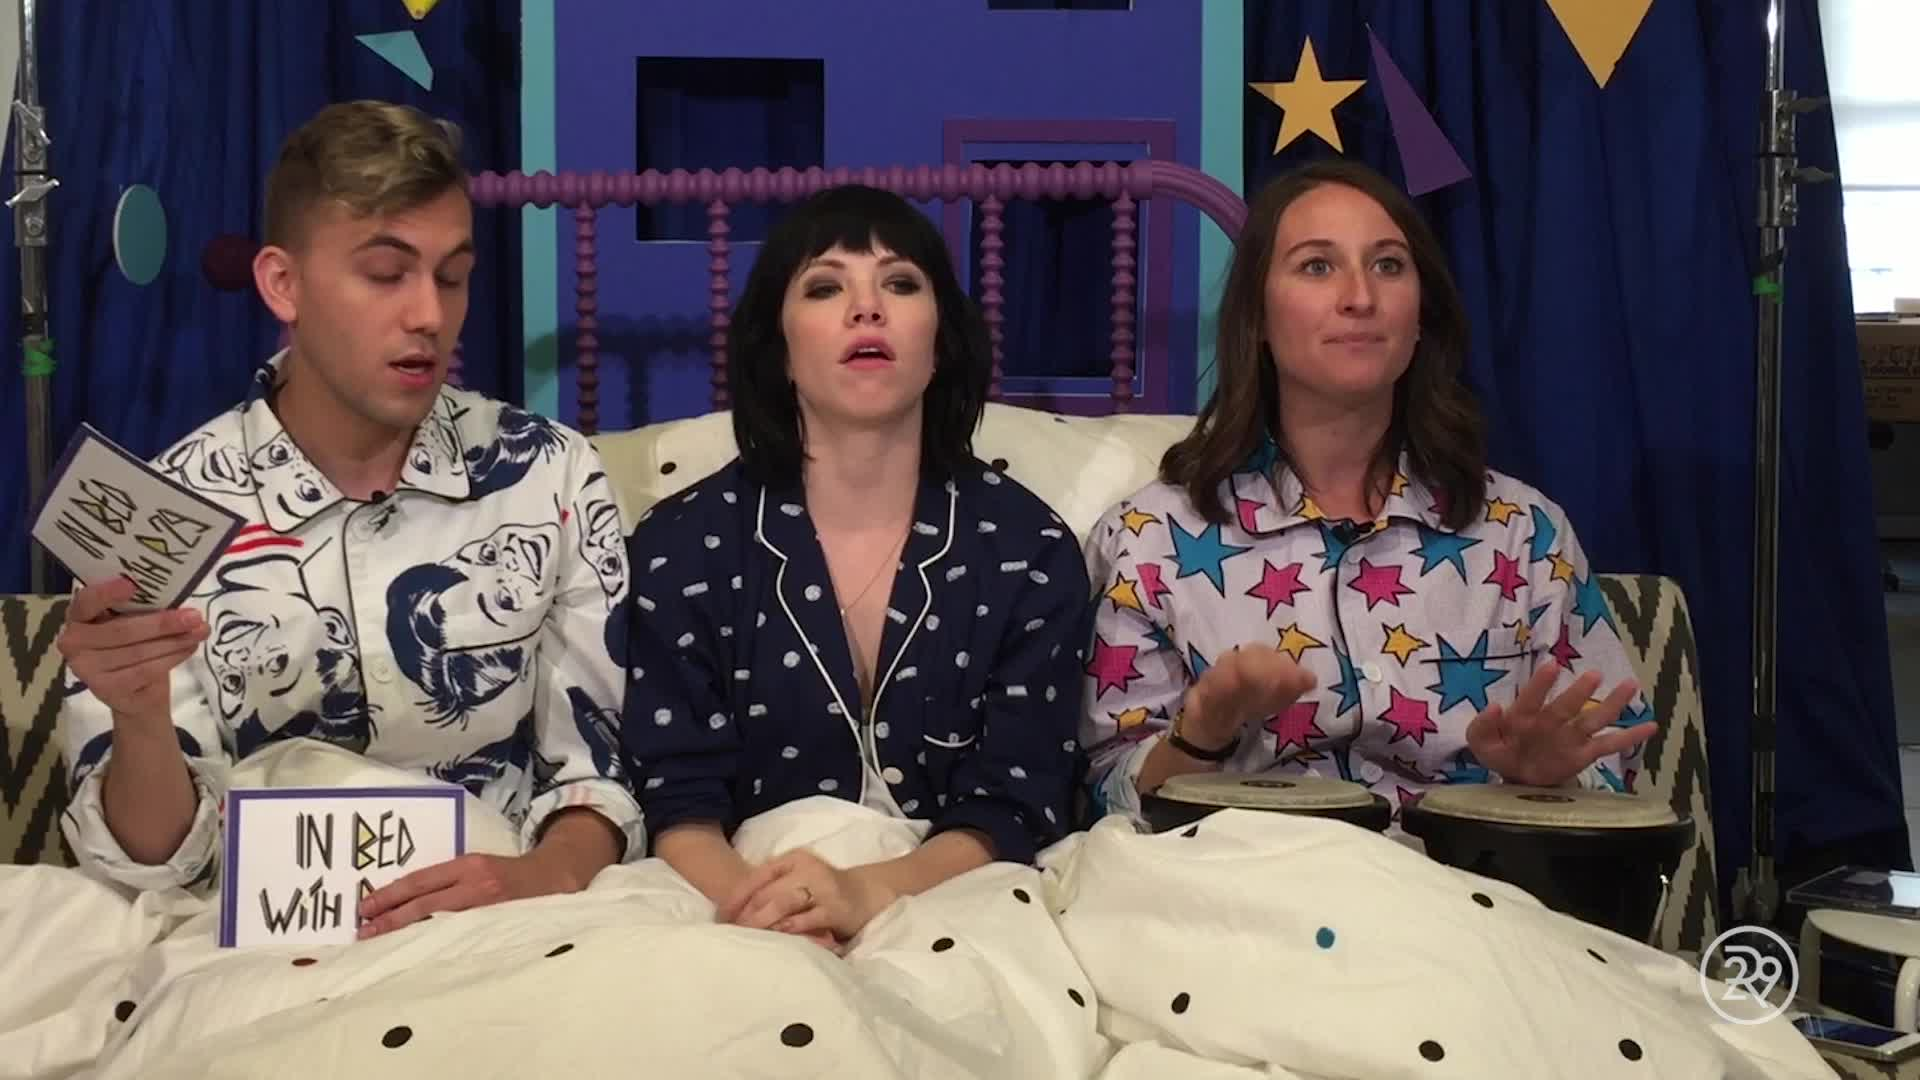 Carly Rae Jepsen  In Bed With Refinery 29